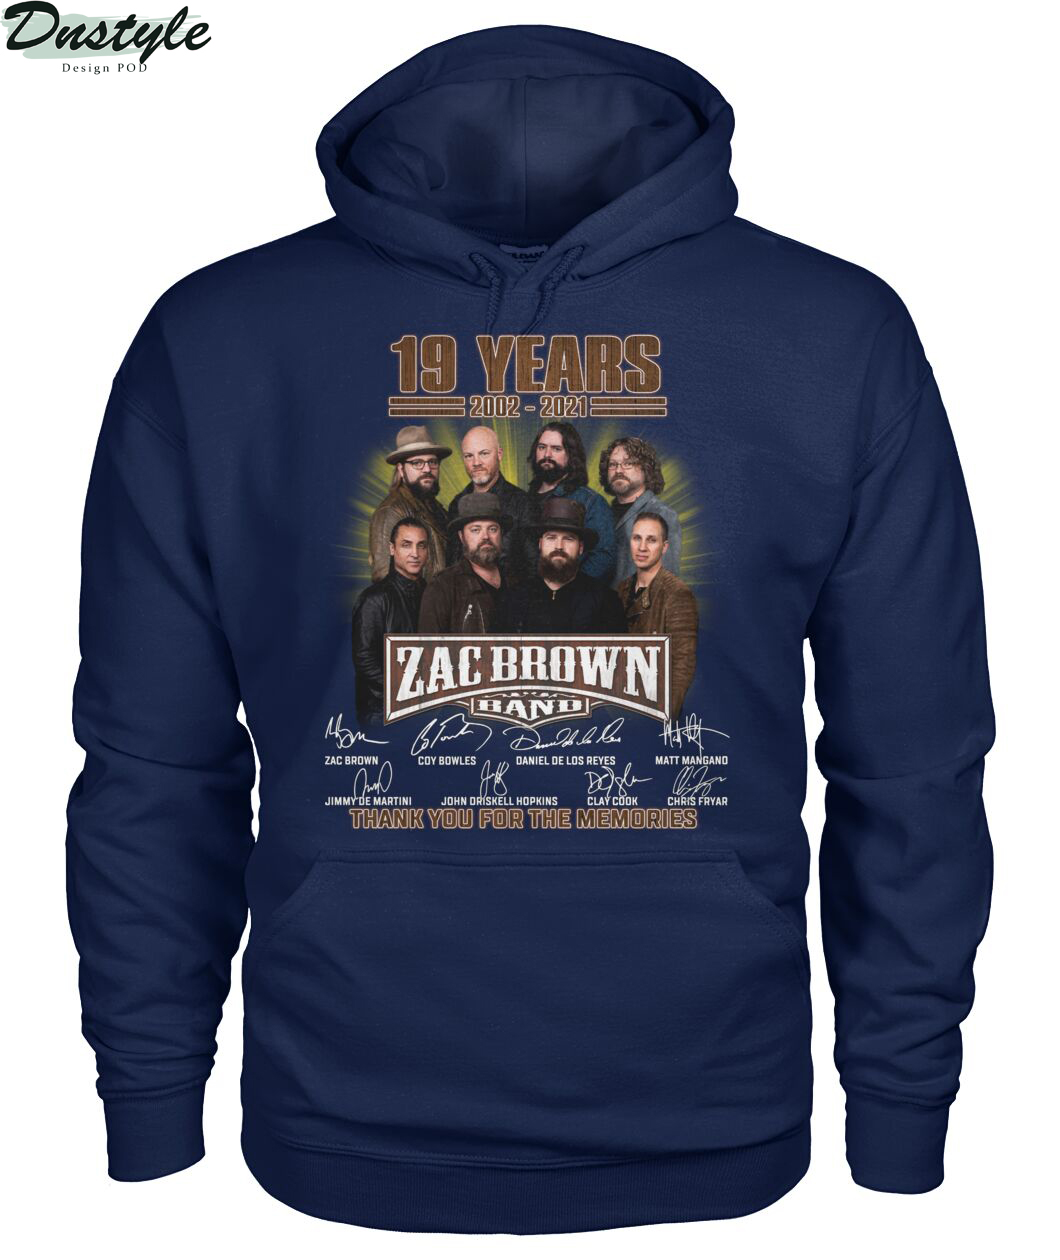 Zac Brown band 19 years 2002 2021 signature thank you for the memories hoodie